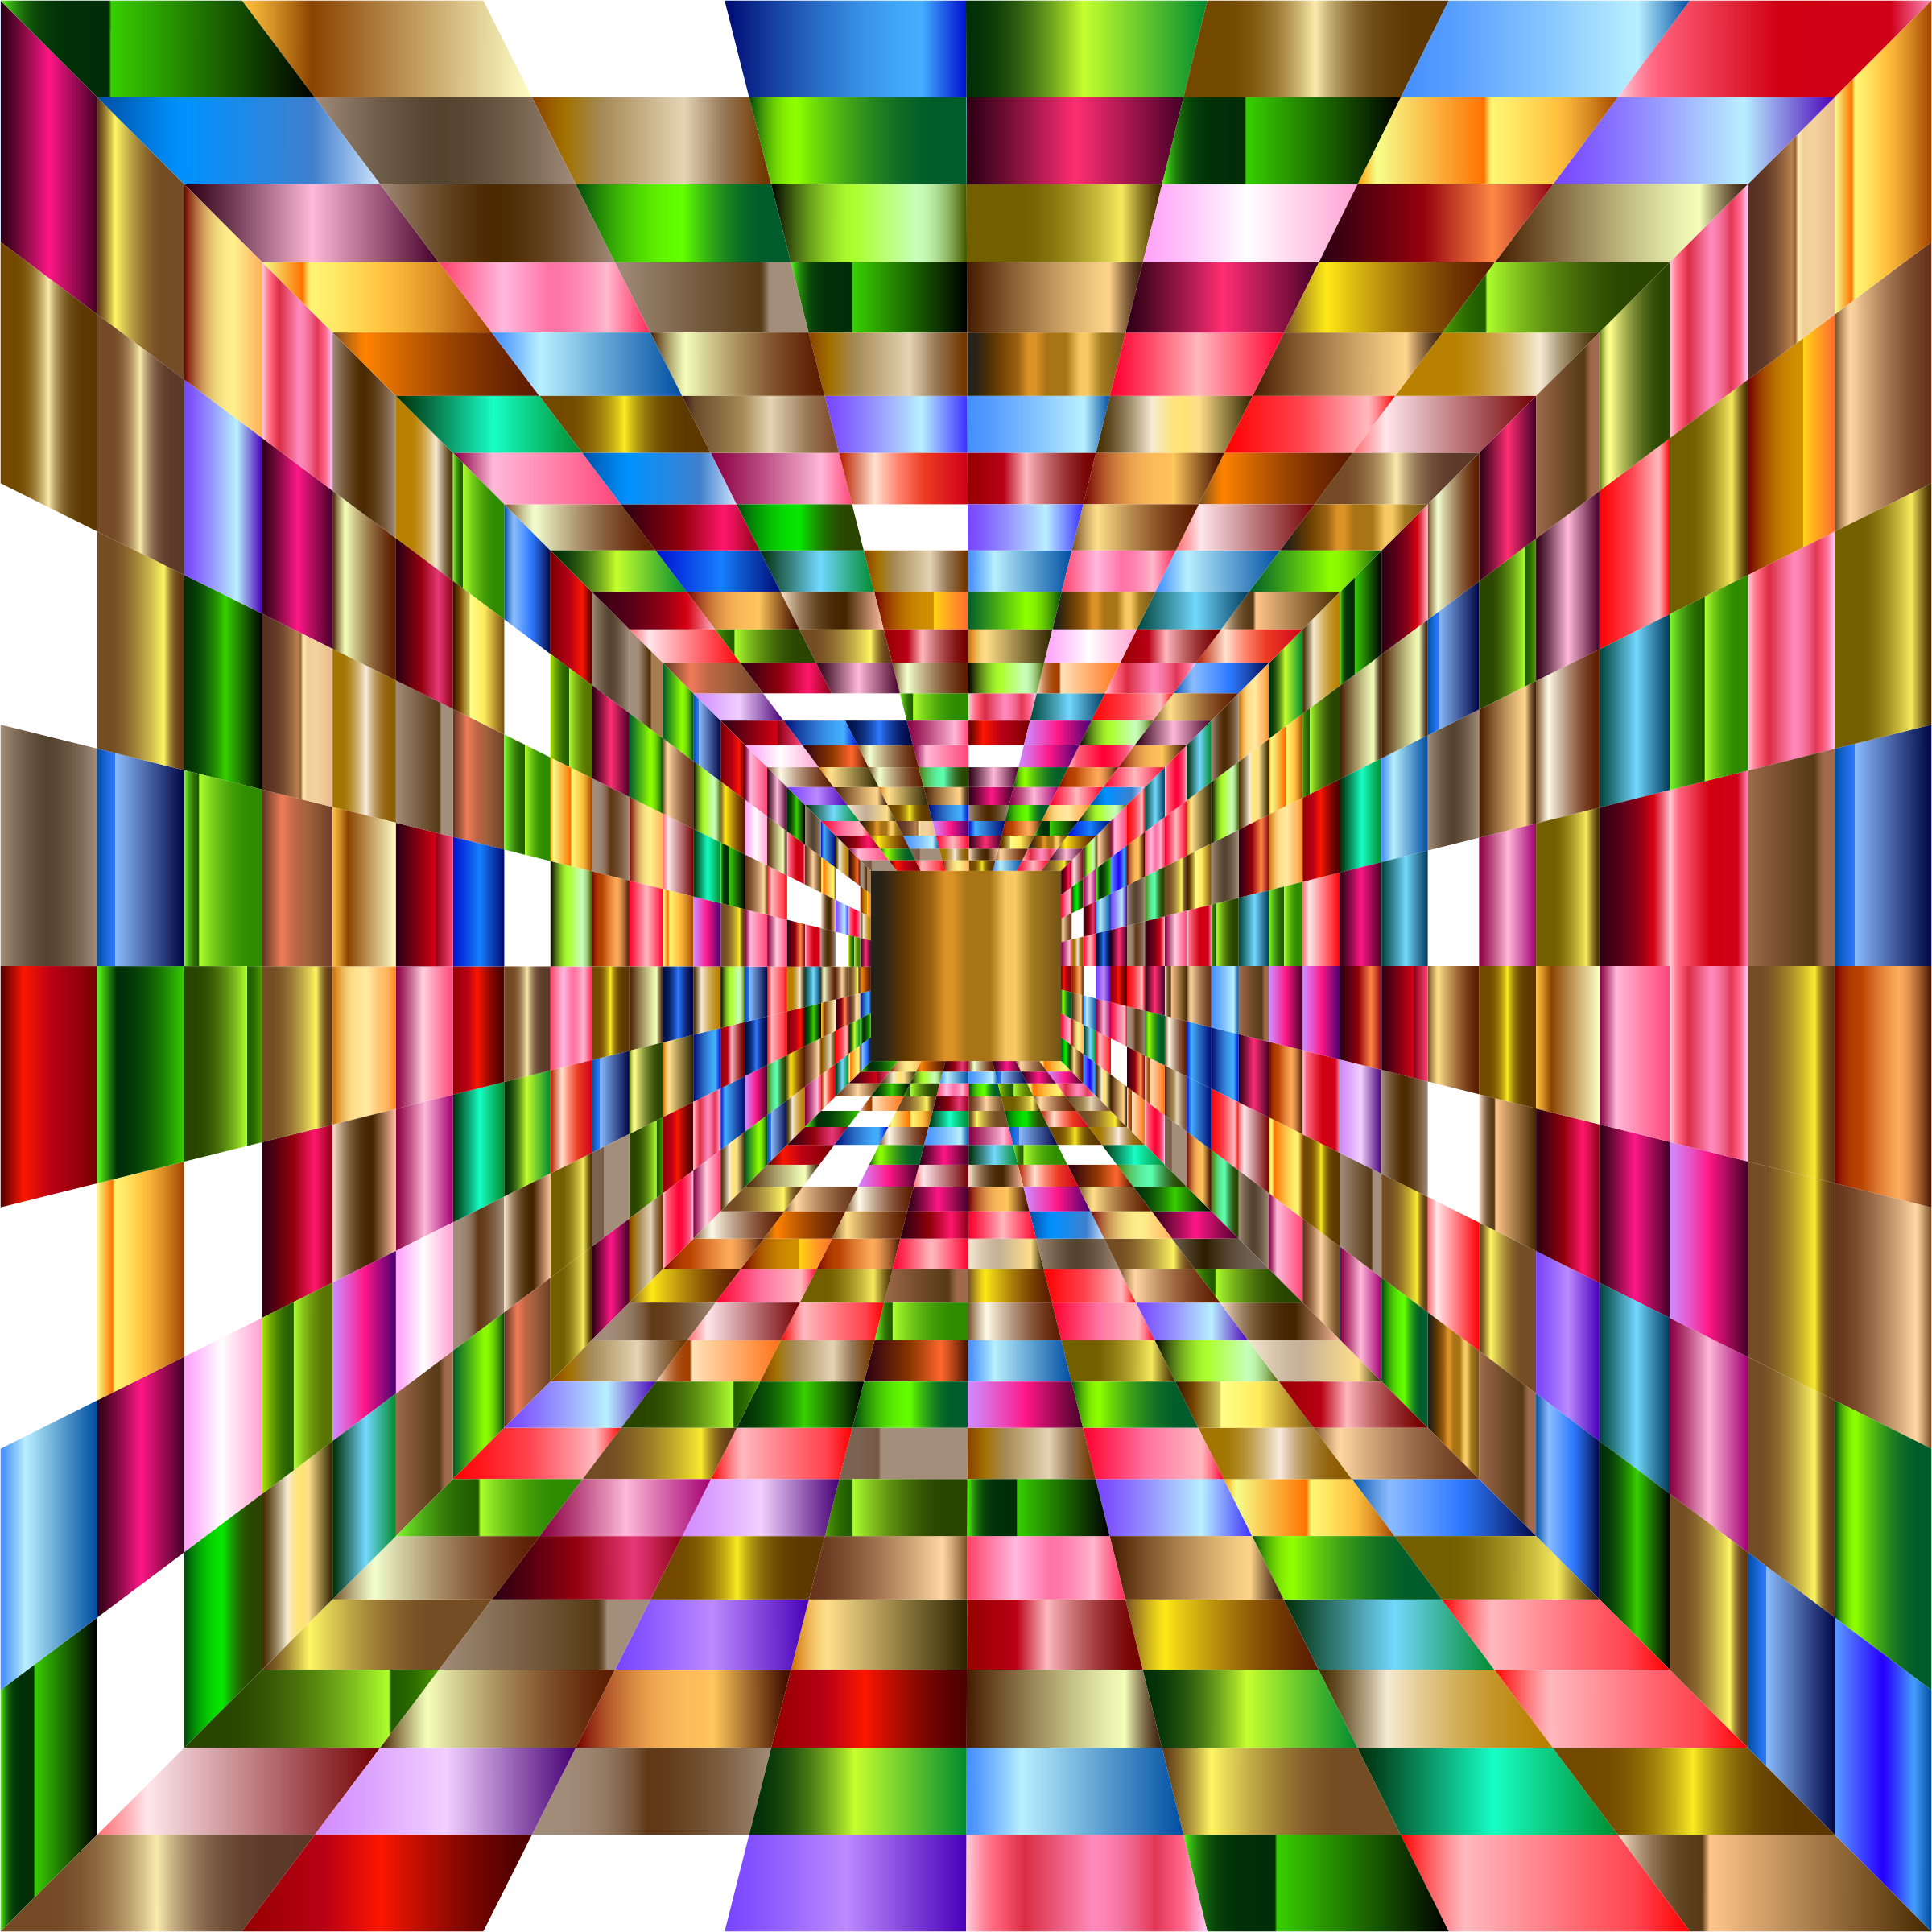 Colorful Perspective Grid 4 by GDJ